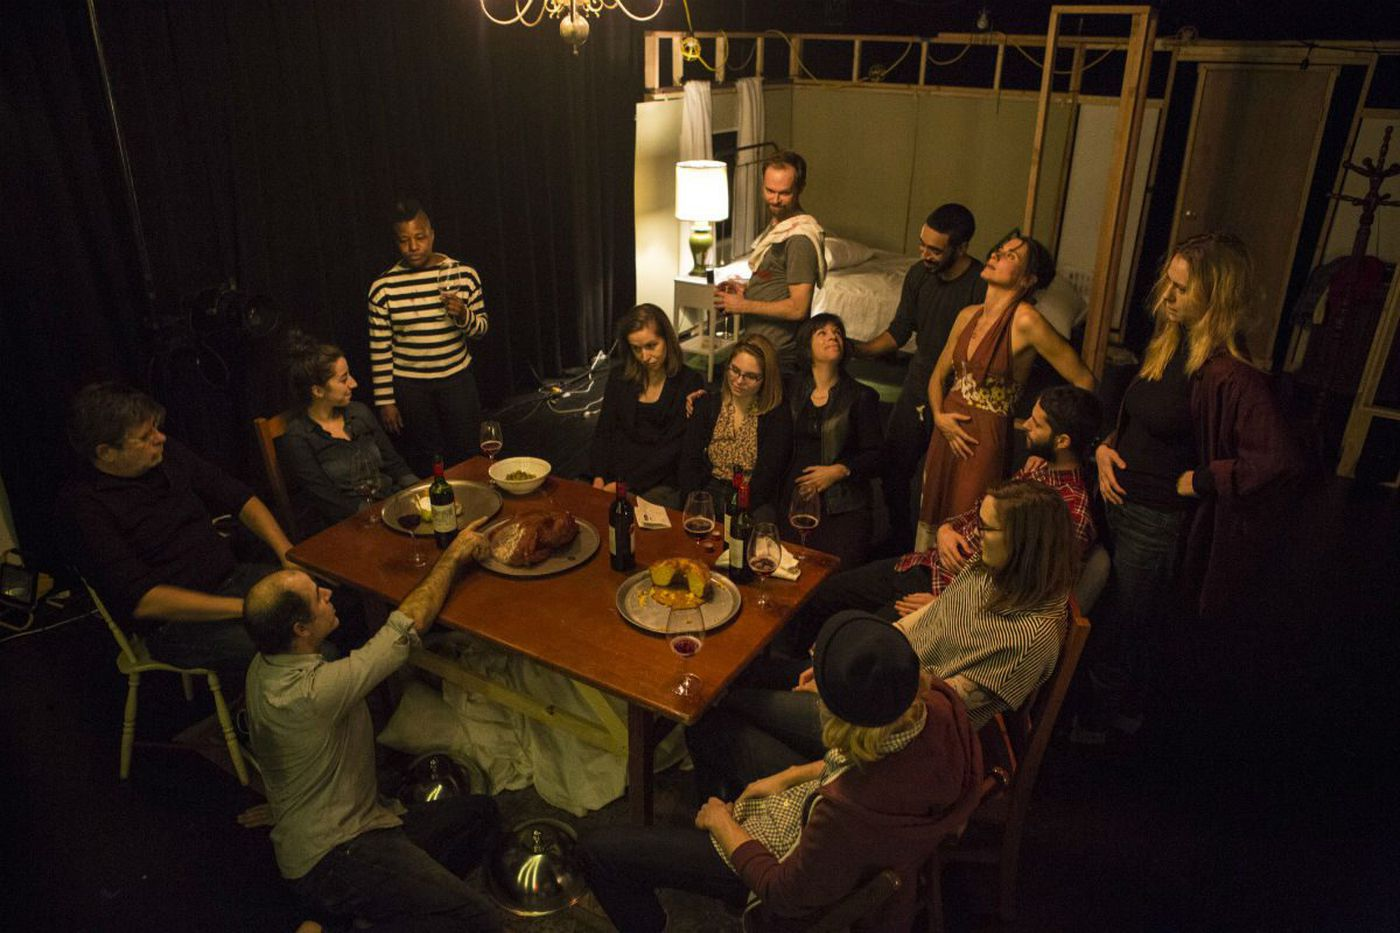 Philly Fringe 2017: Eat, drink, laugh, cry